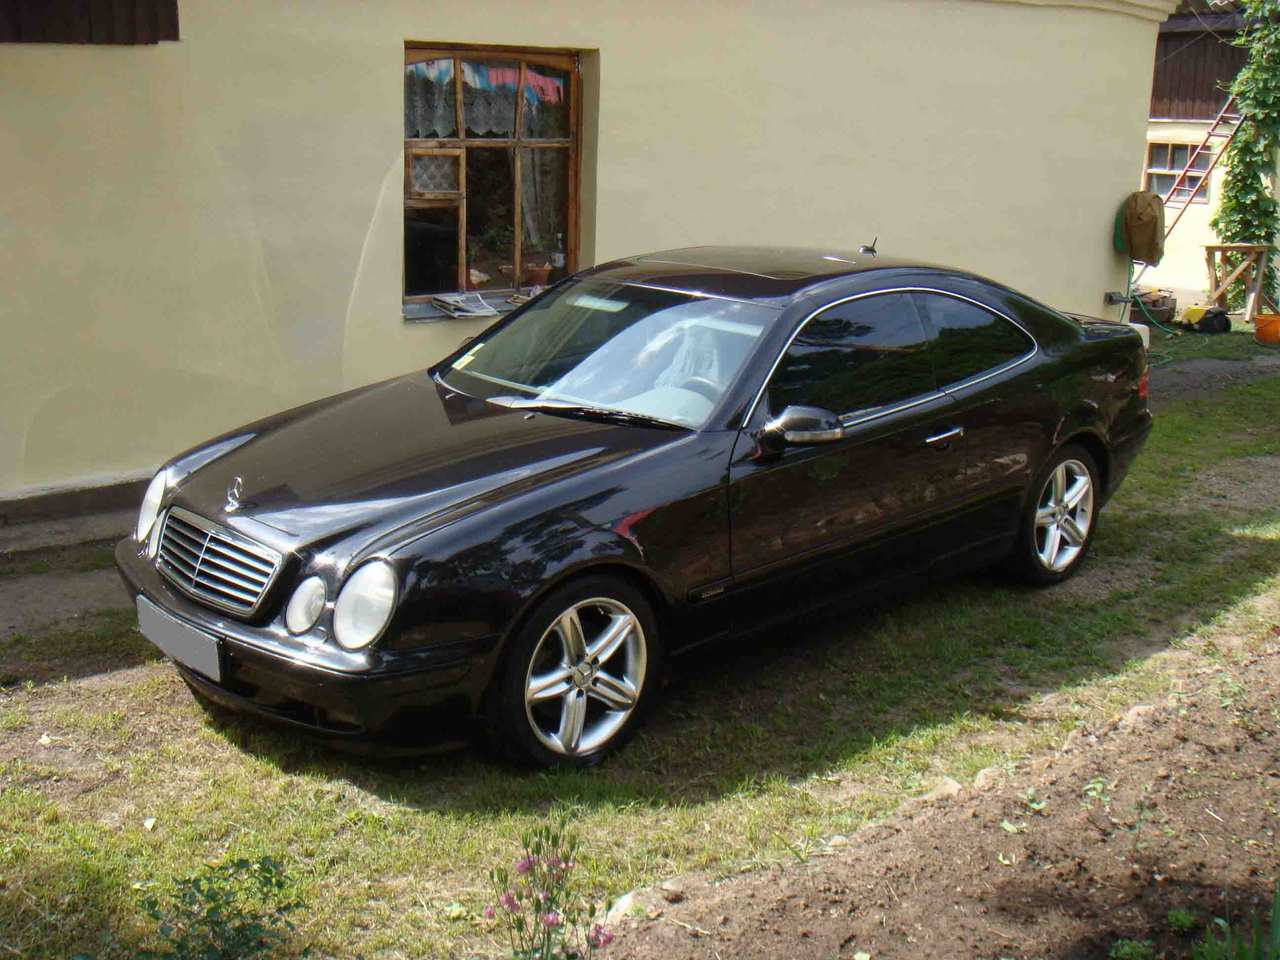 2000 mercedes benz clk class photos 3 2 gasoline fr or rr automatic for sale. Black Bedroom Furniture Sets. Home Design Ideas